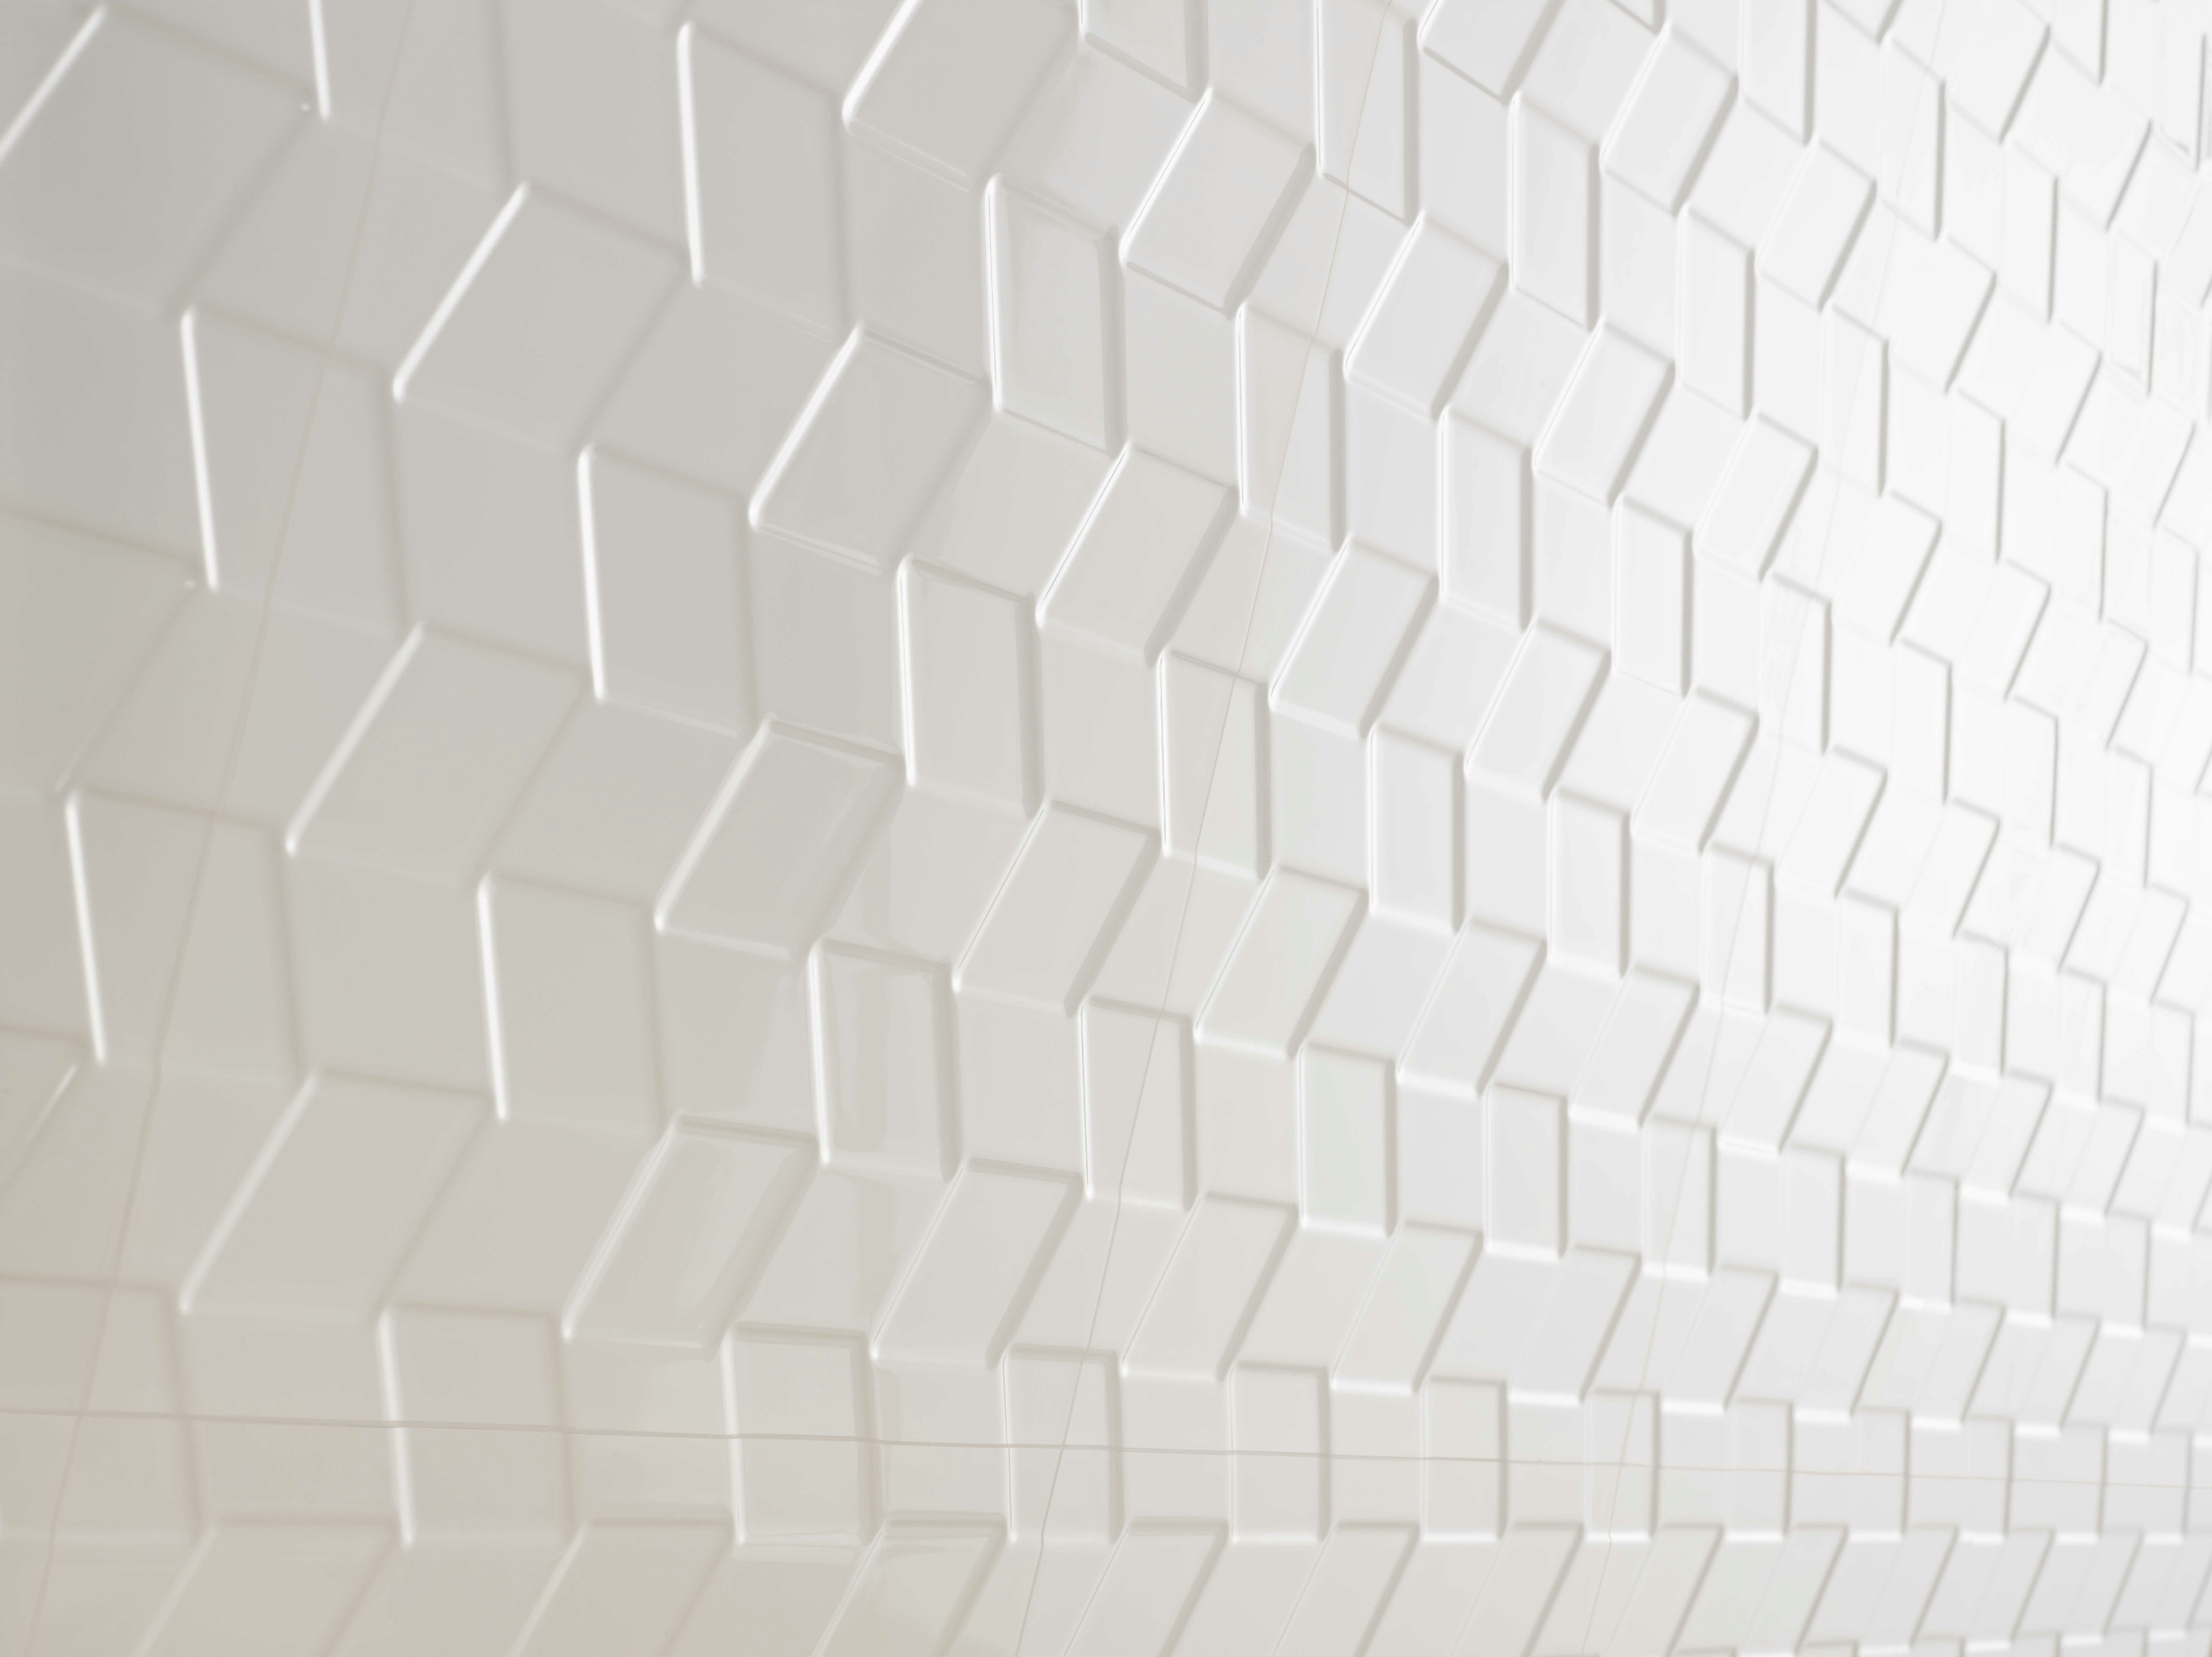 3d ceramic wall tiles choice image tile flooring design ideas 3d ceramic wall tiles images tile flooring design ideas european ceramic tiles image collections tile flooring dailygadgetfo Choice Image